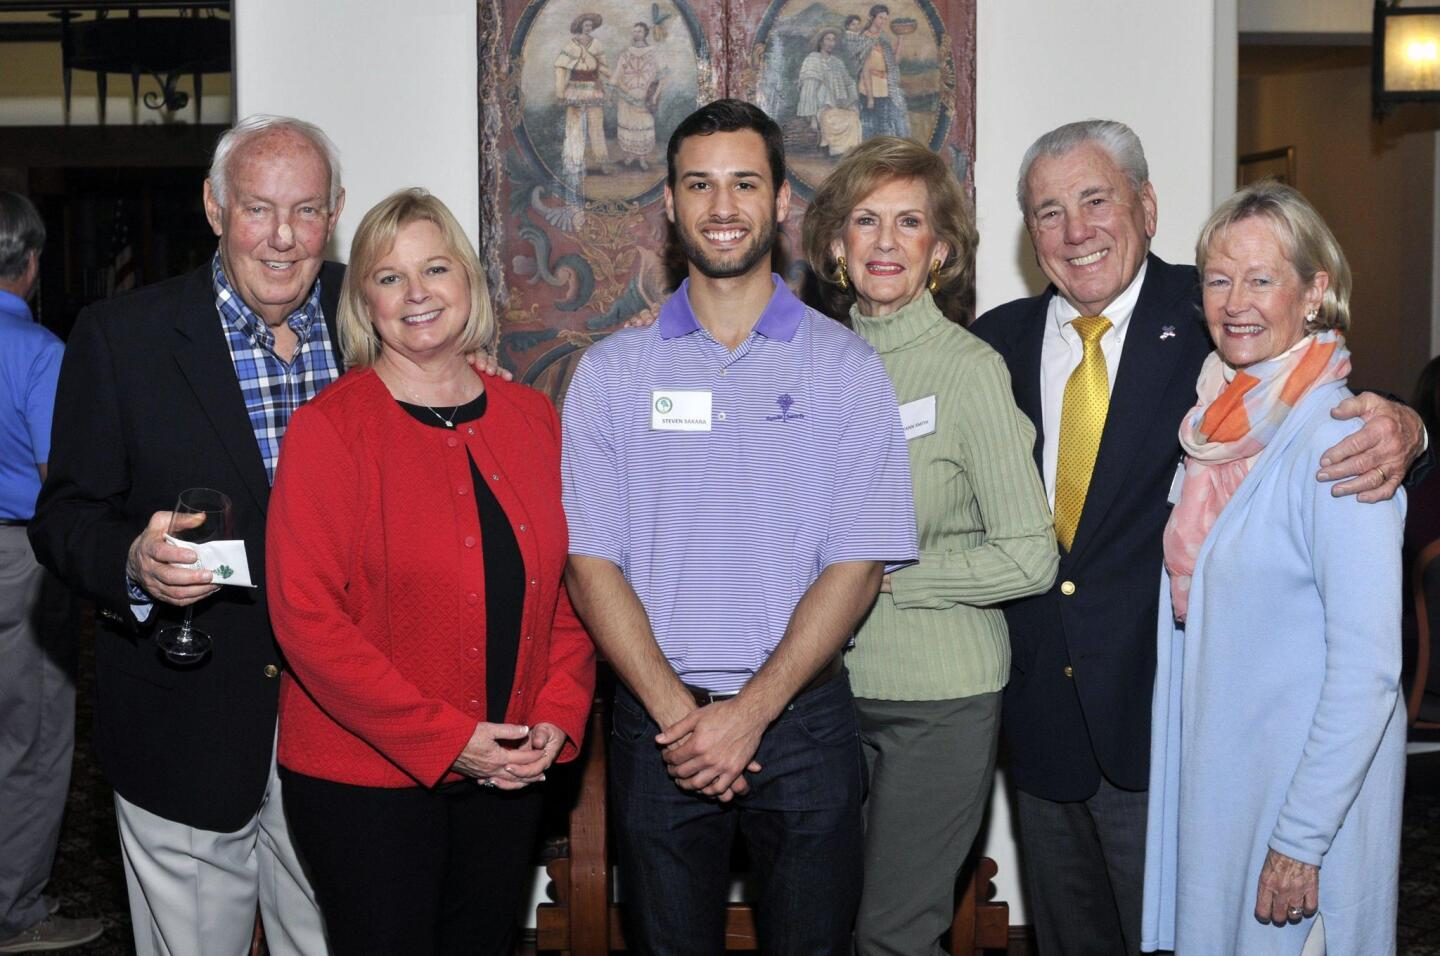 Coach John and Beverly Robinson, first scholarship graduate Steven Sakara, Mary Ann and founding board member Vearl Smith, Susie Alt